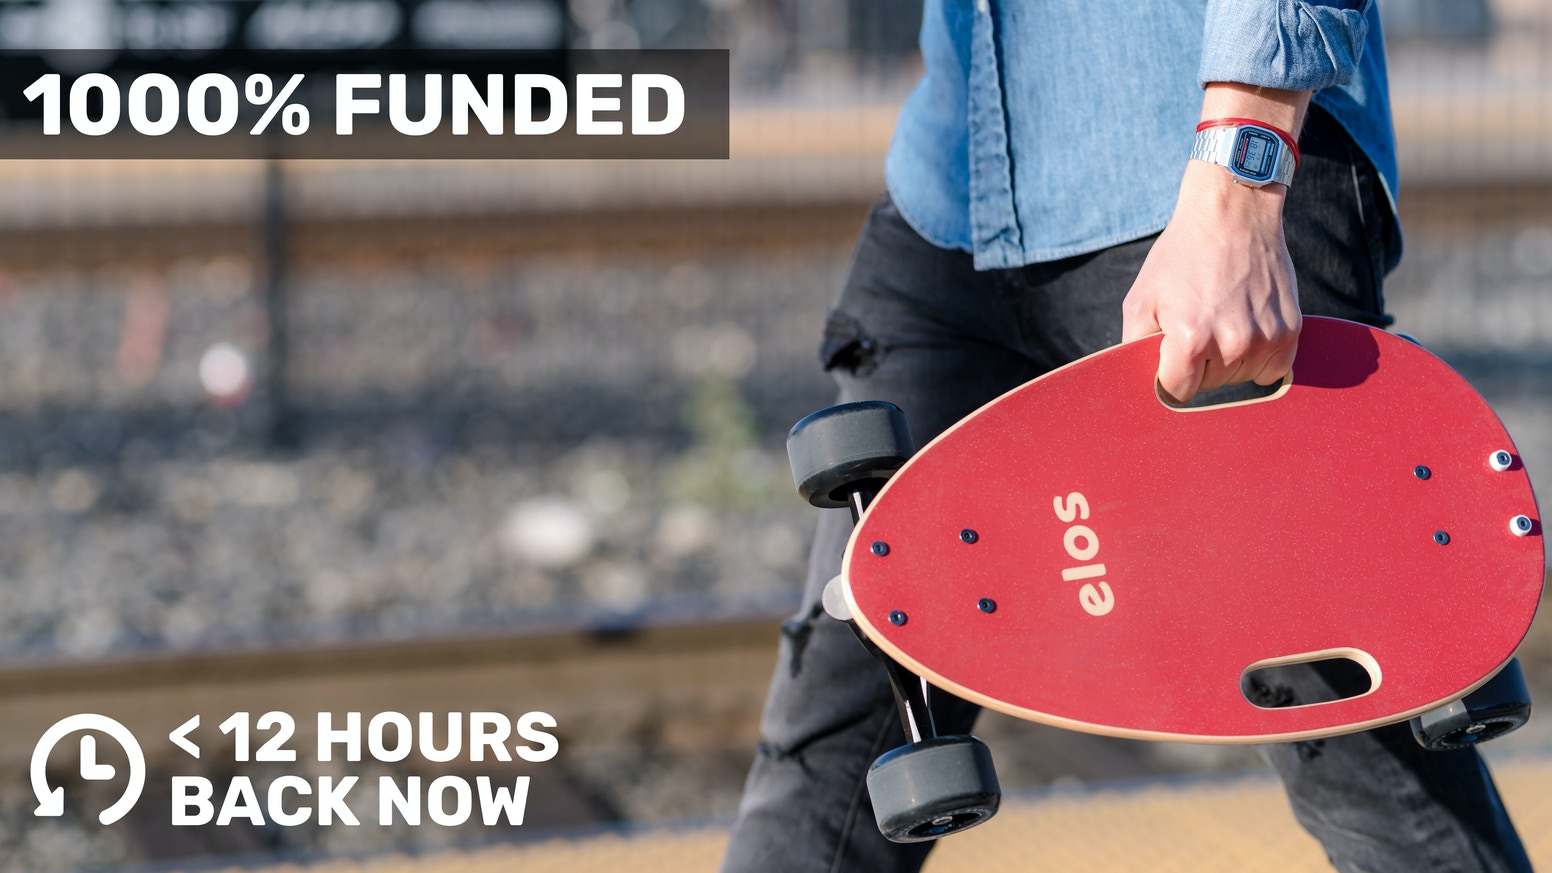 An easy to learn mini-cruiser built for urban commuters and non-skateboarders. Cut travel time in half while enjoying your commute. An unique Christmas gift.